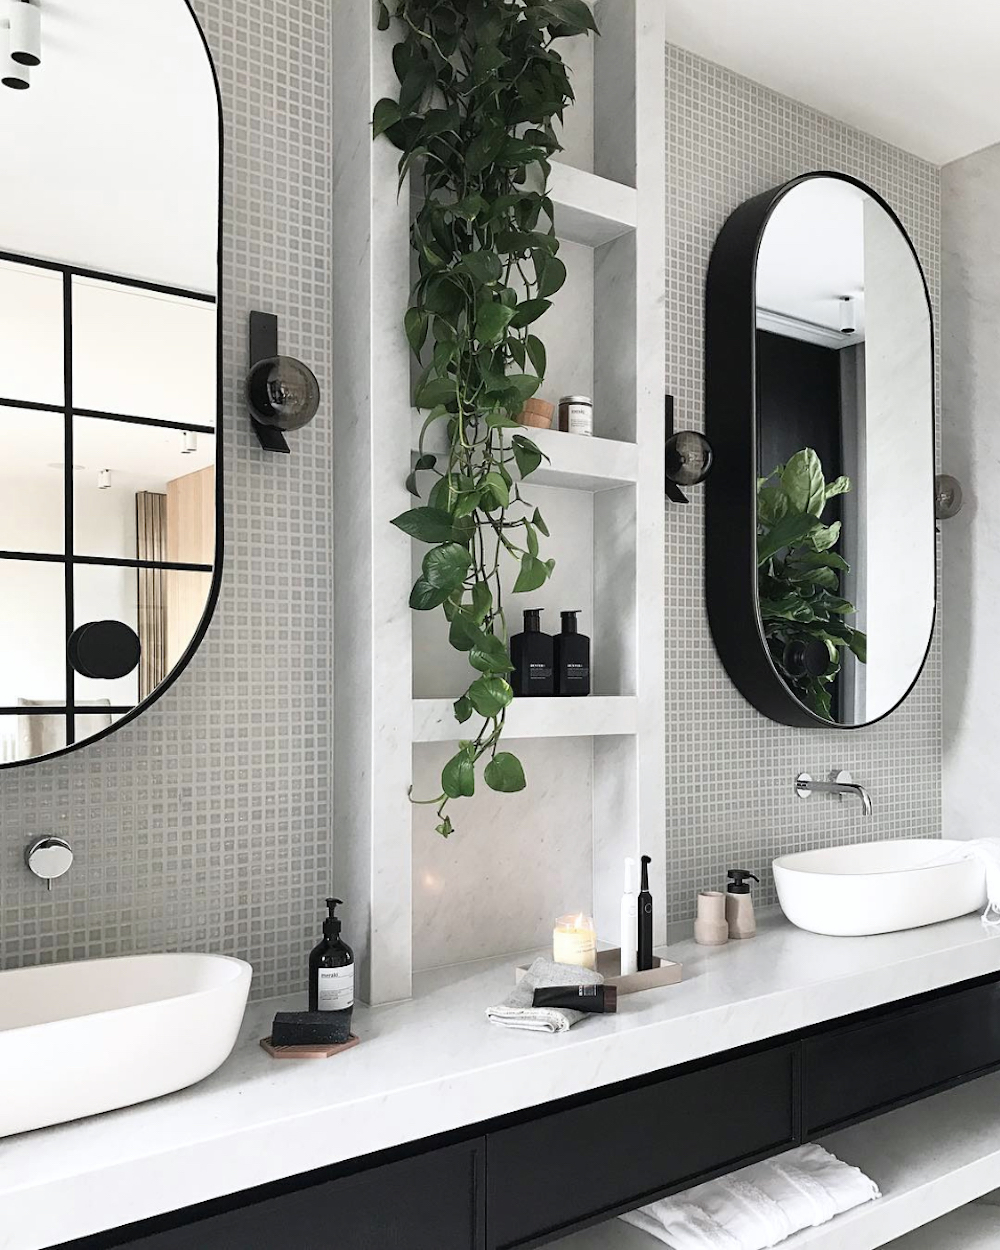 Combining closed and open storage || Bathroom renovation tips by First Sense